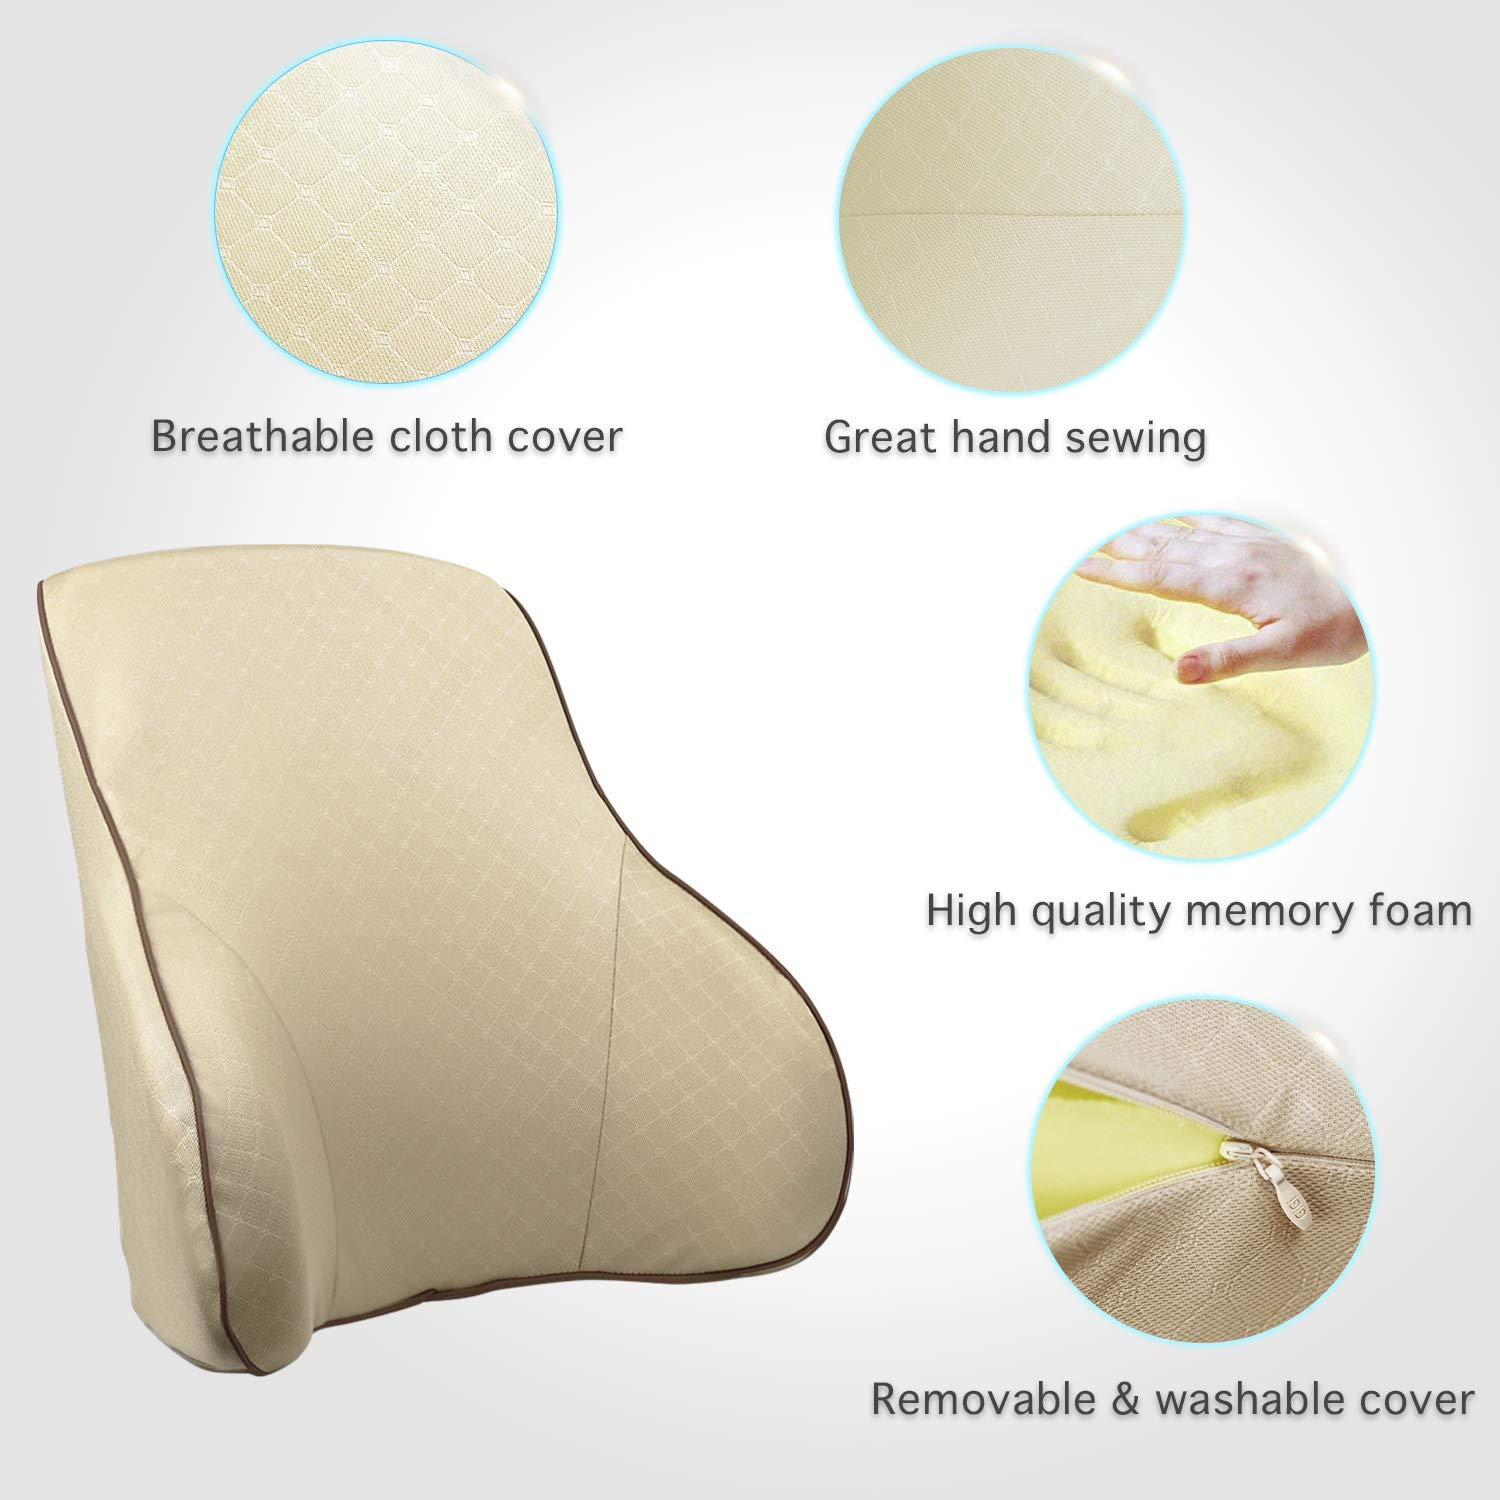 Khaki RaoRanDang Car Seat Lumbar Support with High Density Memory Foam Anti-Slip Particles Washable Cover Back Support Cushion Lower Pain Relief Orthopedic Back Support Pillow